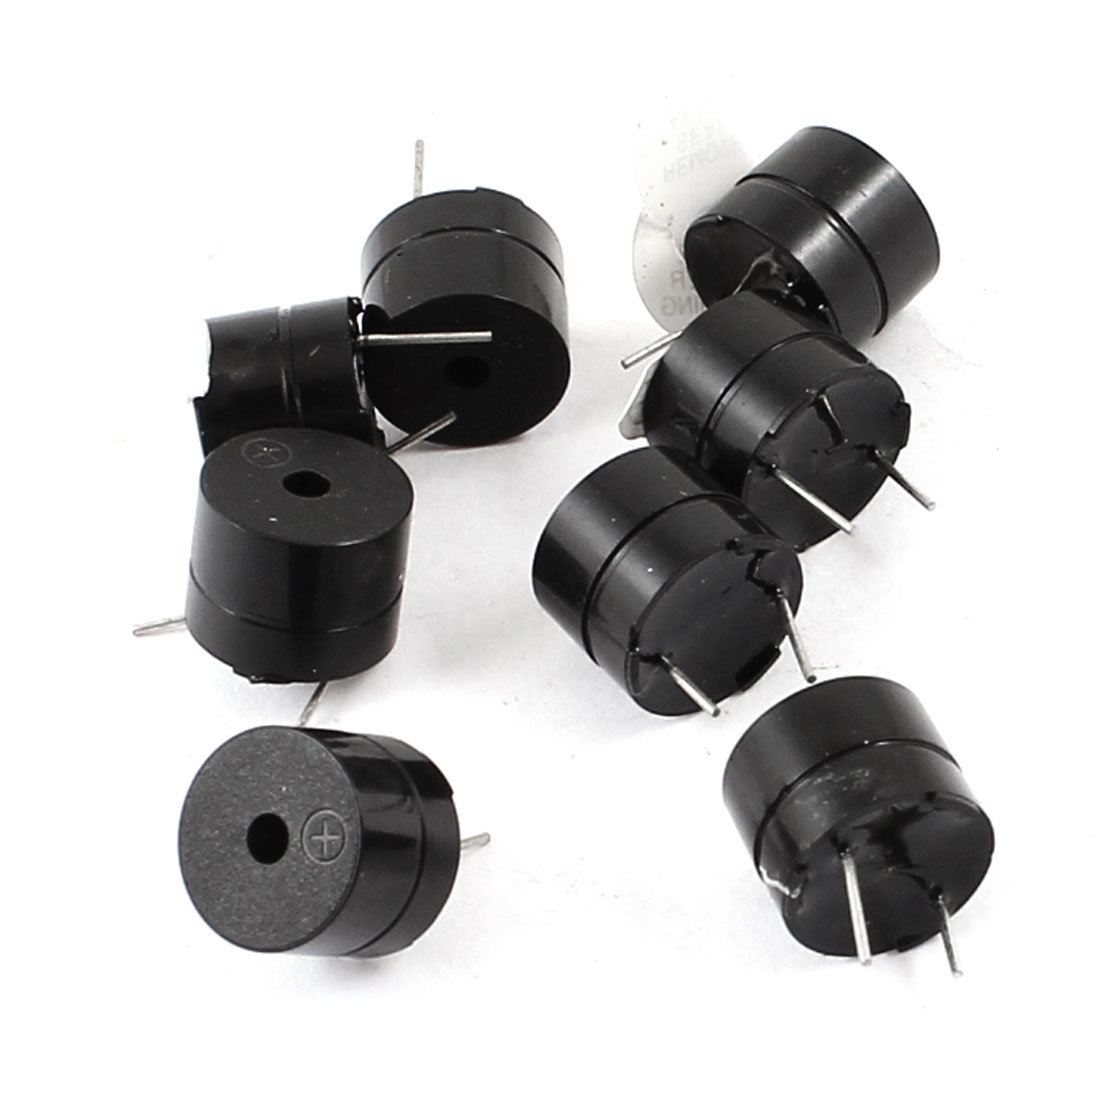 8pcs Industrial Electronic Continuous Sound Buzzer Black DC12V 12mmx9.5mm